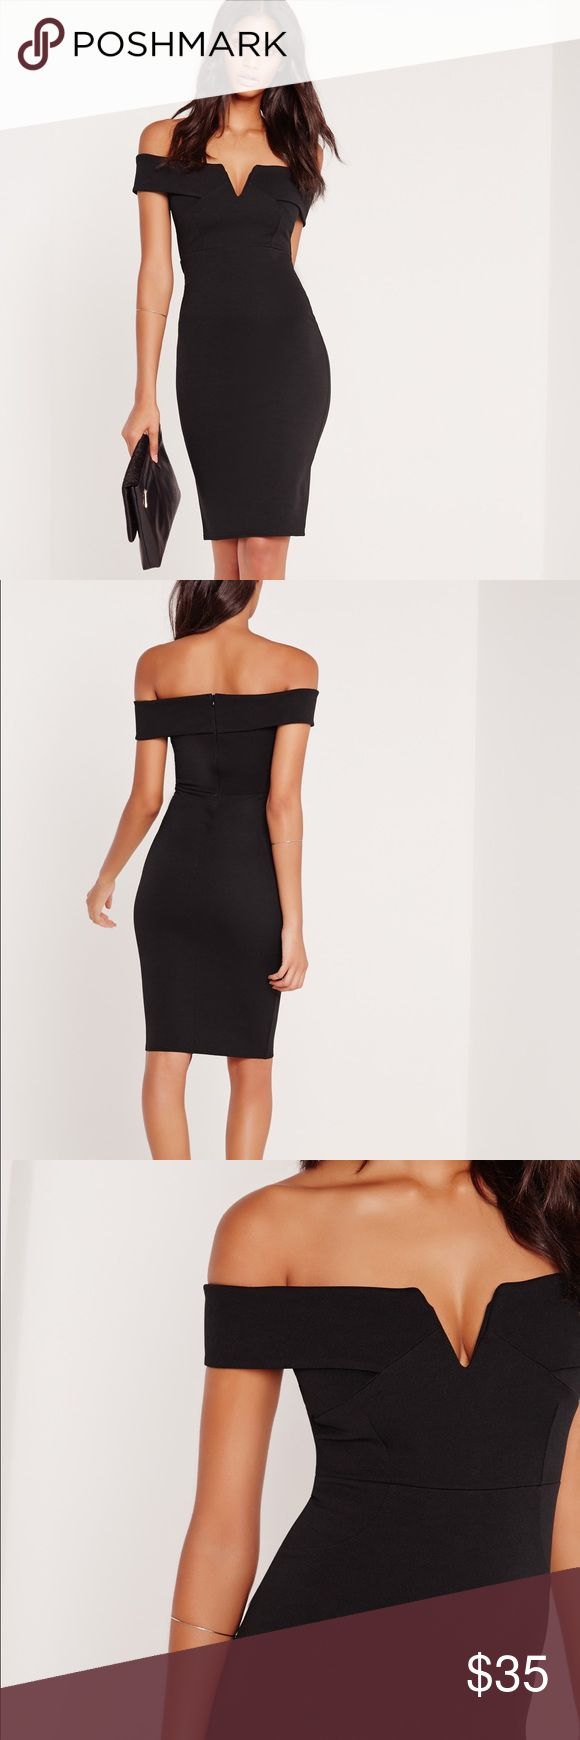 v front Bardot Midi Evening Dress - Black COMPLETELY UNWORN - US size 6 dress. Featuring a sweet bardot neckline and sexy v front. Beautiful and classy cocktail/evening dress for date or holiday party! ✨ Missguided Dresses Midi